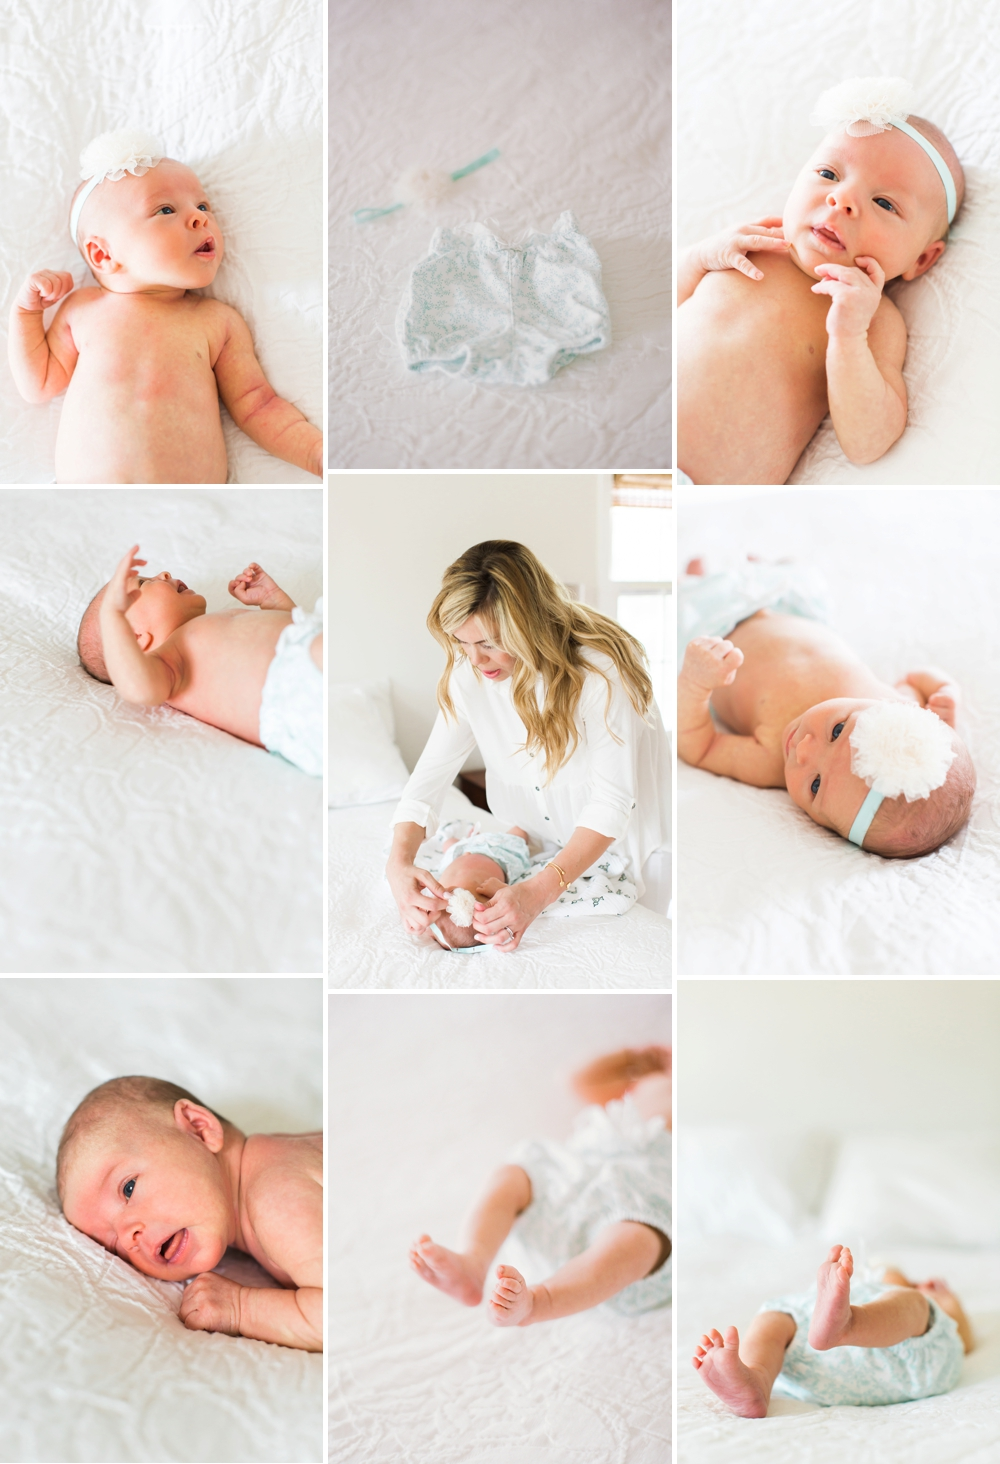 Cleveland Newborn Photos at Home